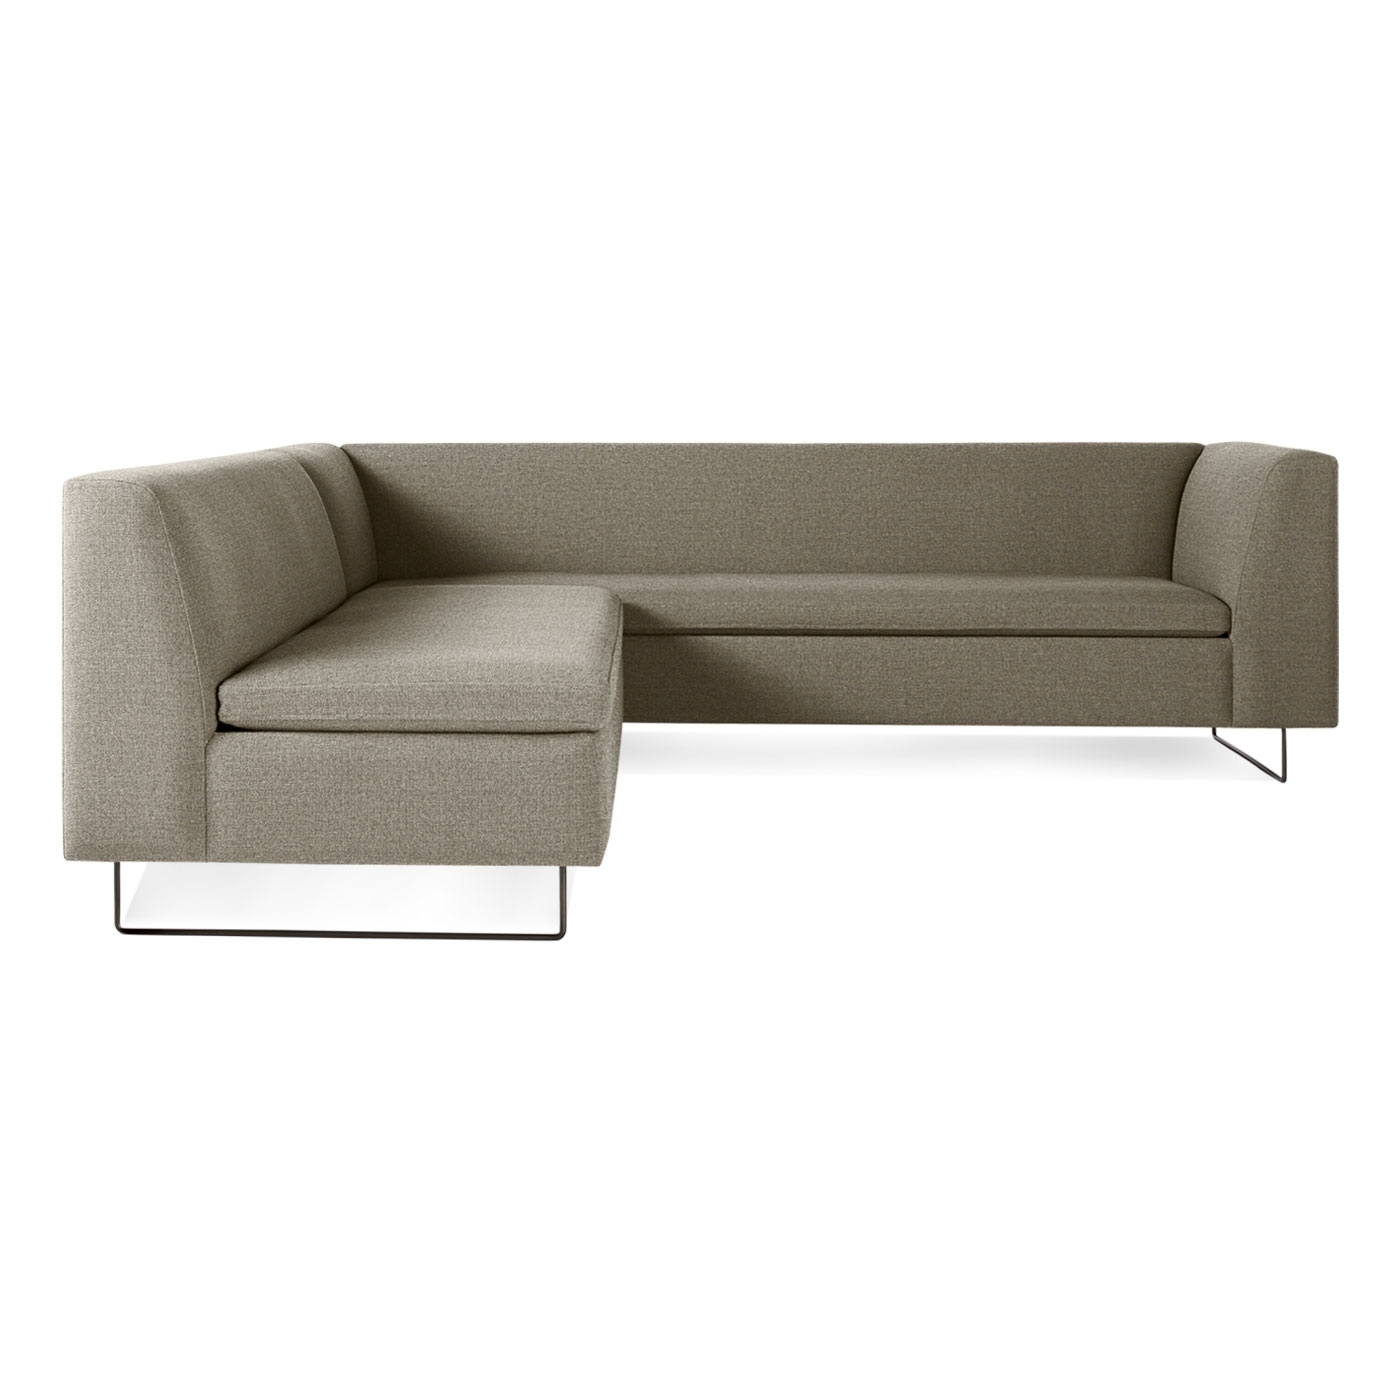 Latest Bonnie & Clyde Modular Fabric Sectional Sofa (View 7 of 15)